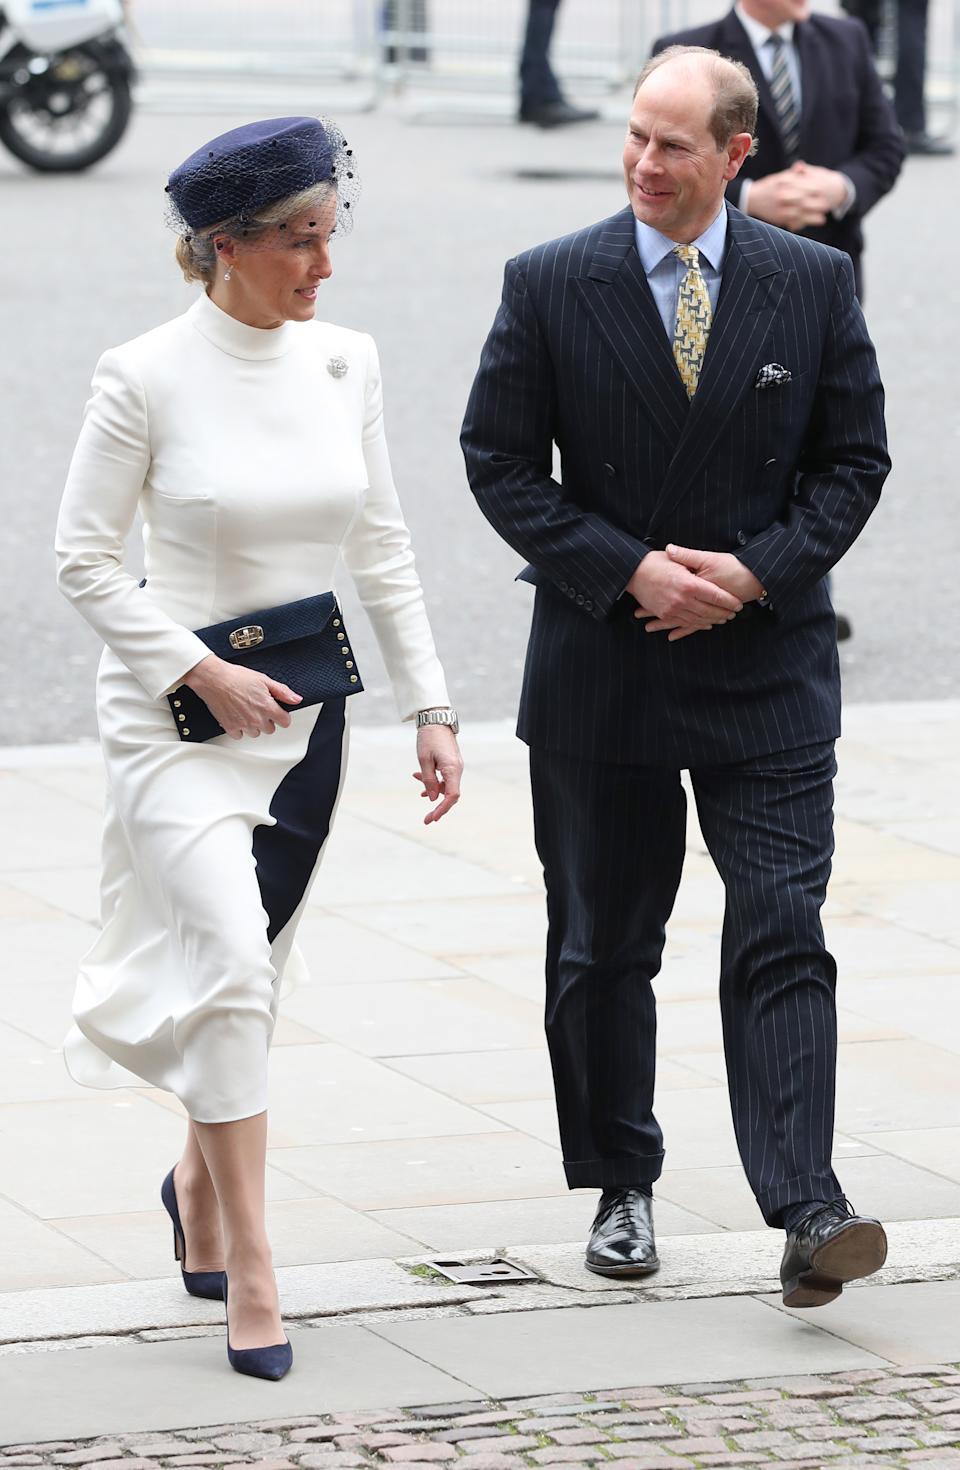 The Earl and Countess of Wessex arrive at the Commonwealth Service at Westminster Abbey, London on Commonwealth Day. The service is the Duke and Duchess of Sussex's final official engagement before they quit royal life. (Photo by Yui Mok/PA Images via Getty Images)